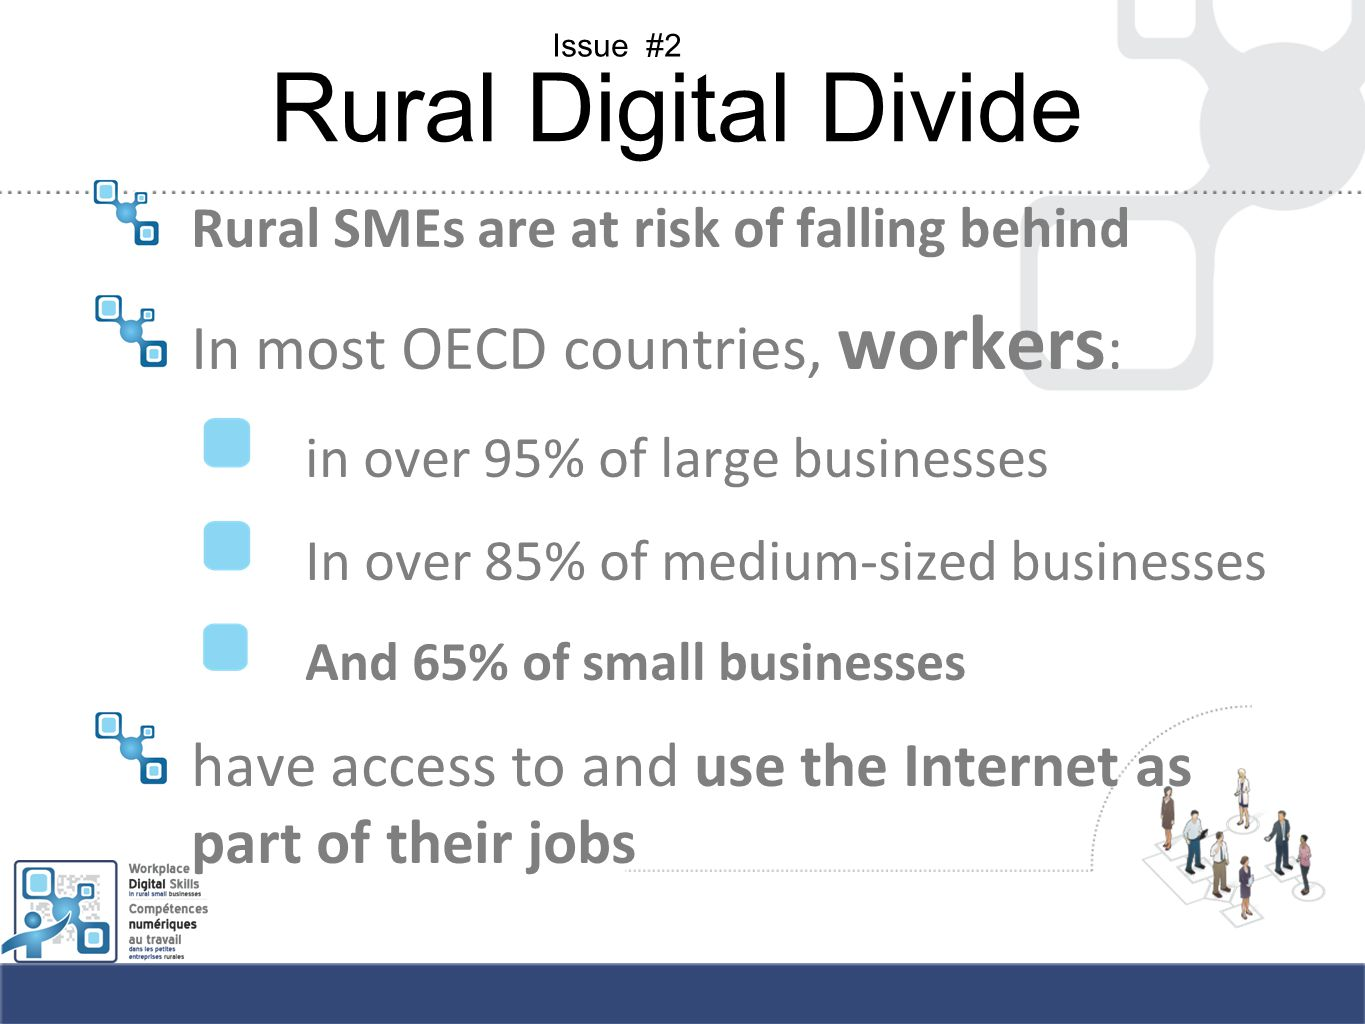 Rural Digital Divide Rural SMEs are at risk of falling behind In most OECD countries, workers : in over 95% of large businesses In over 85% of medium-sized businesses And 65% of small businesses have access to and use the Internet as part of their jobs Issue #2